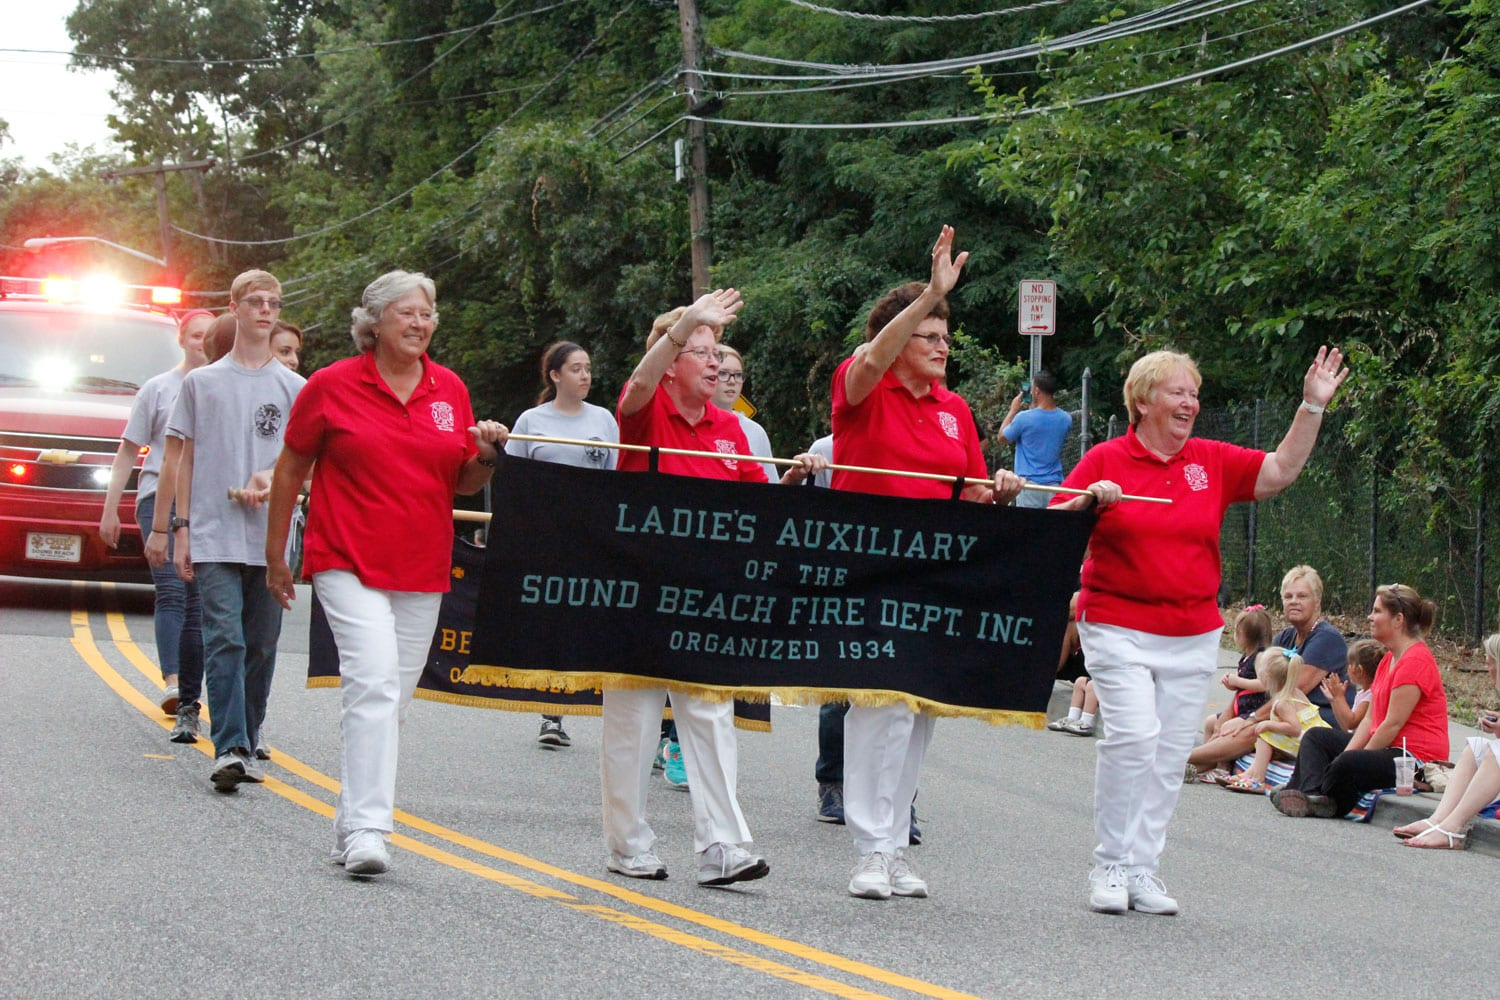 New york suffolk county sound beach - The Sound Beach Fire Department Ladies Auxiliary Waves To The